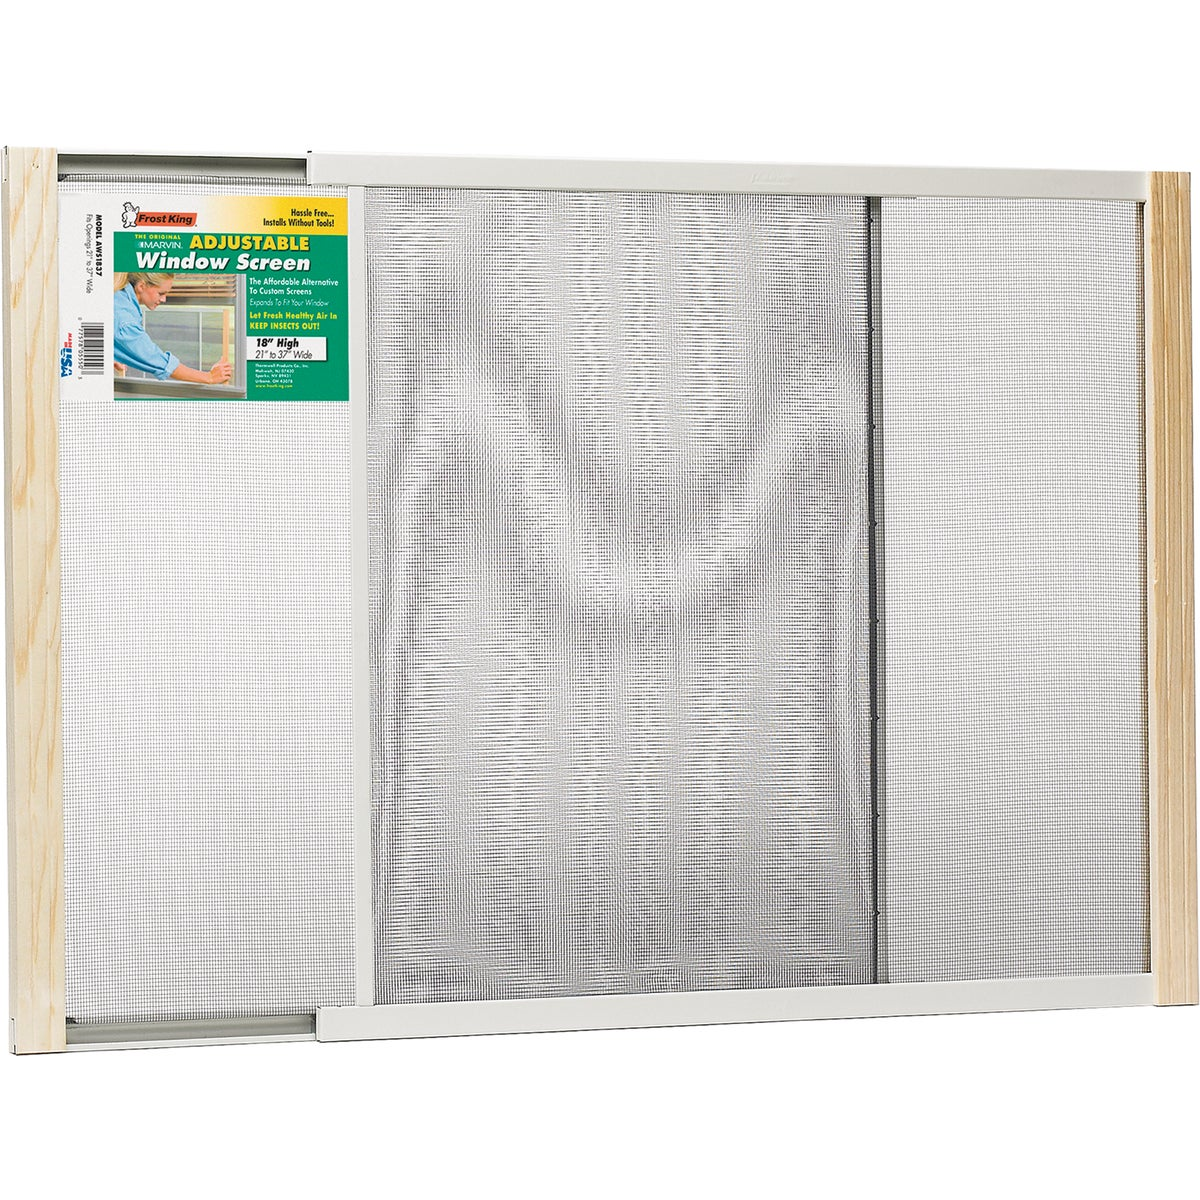 ADJUSTABLE WINDOW SCREEN - AWS1837 by Thermwell Prods Co